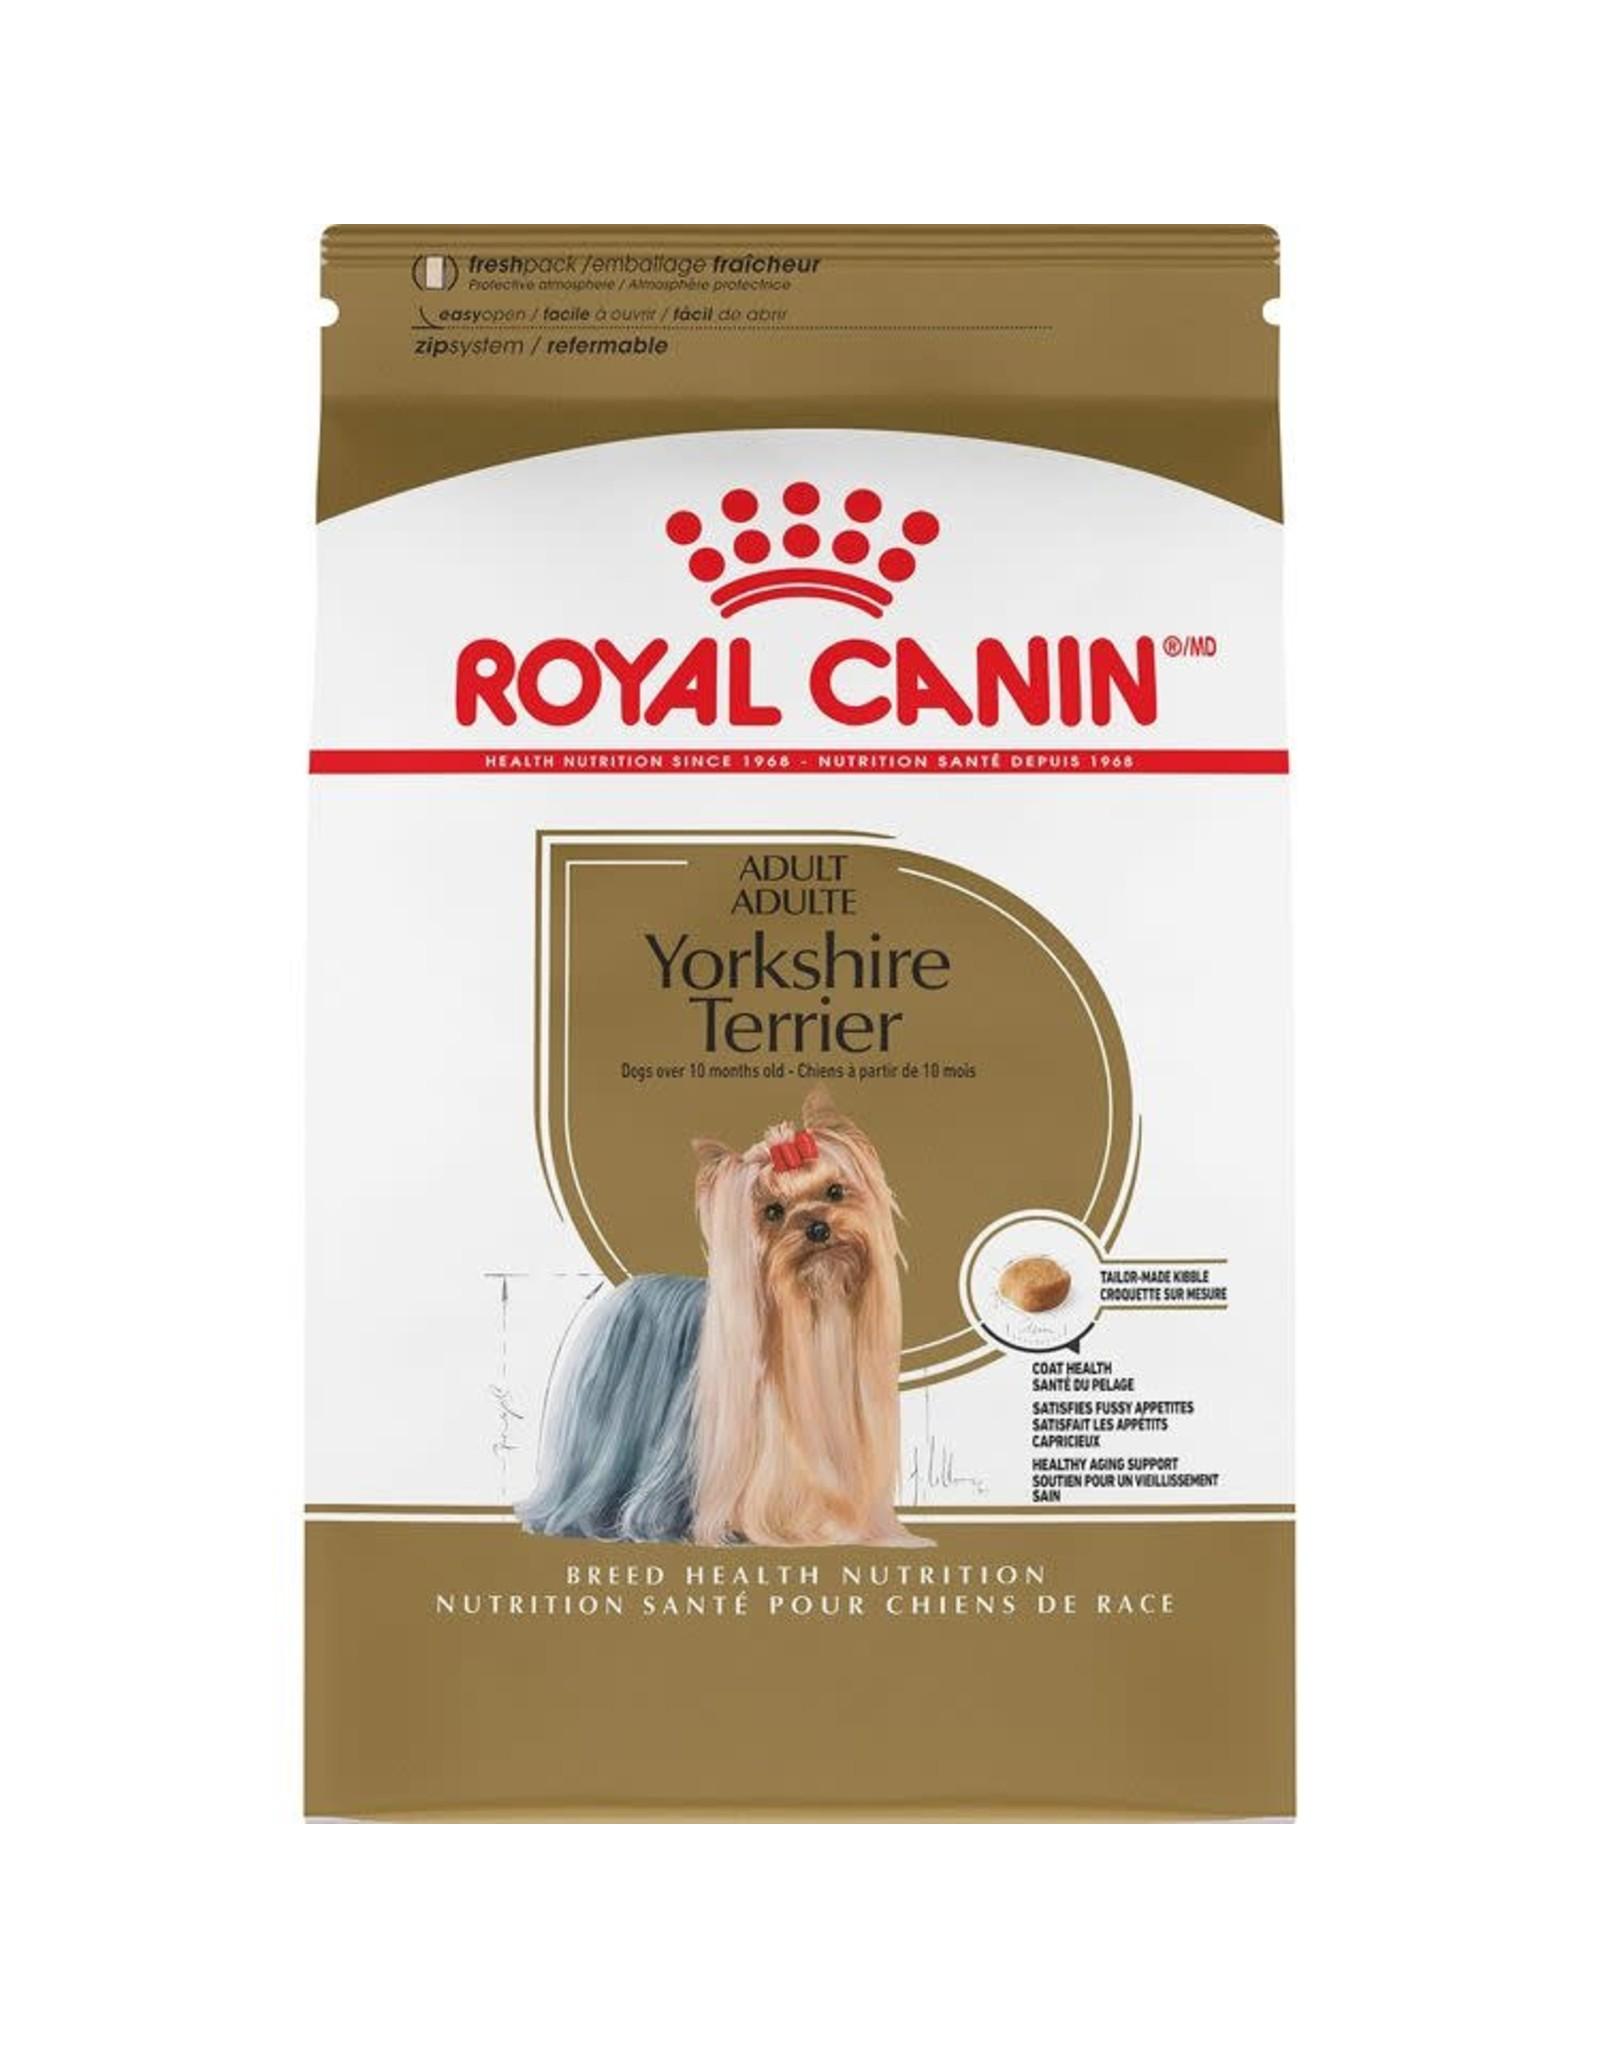 Royal Canin Royal Canin Yorkshire Terrier Adult 10lb